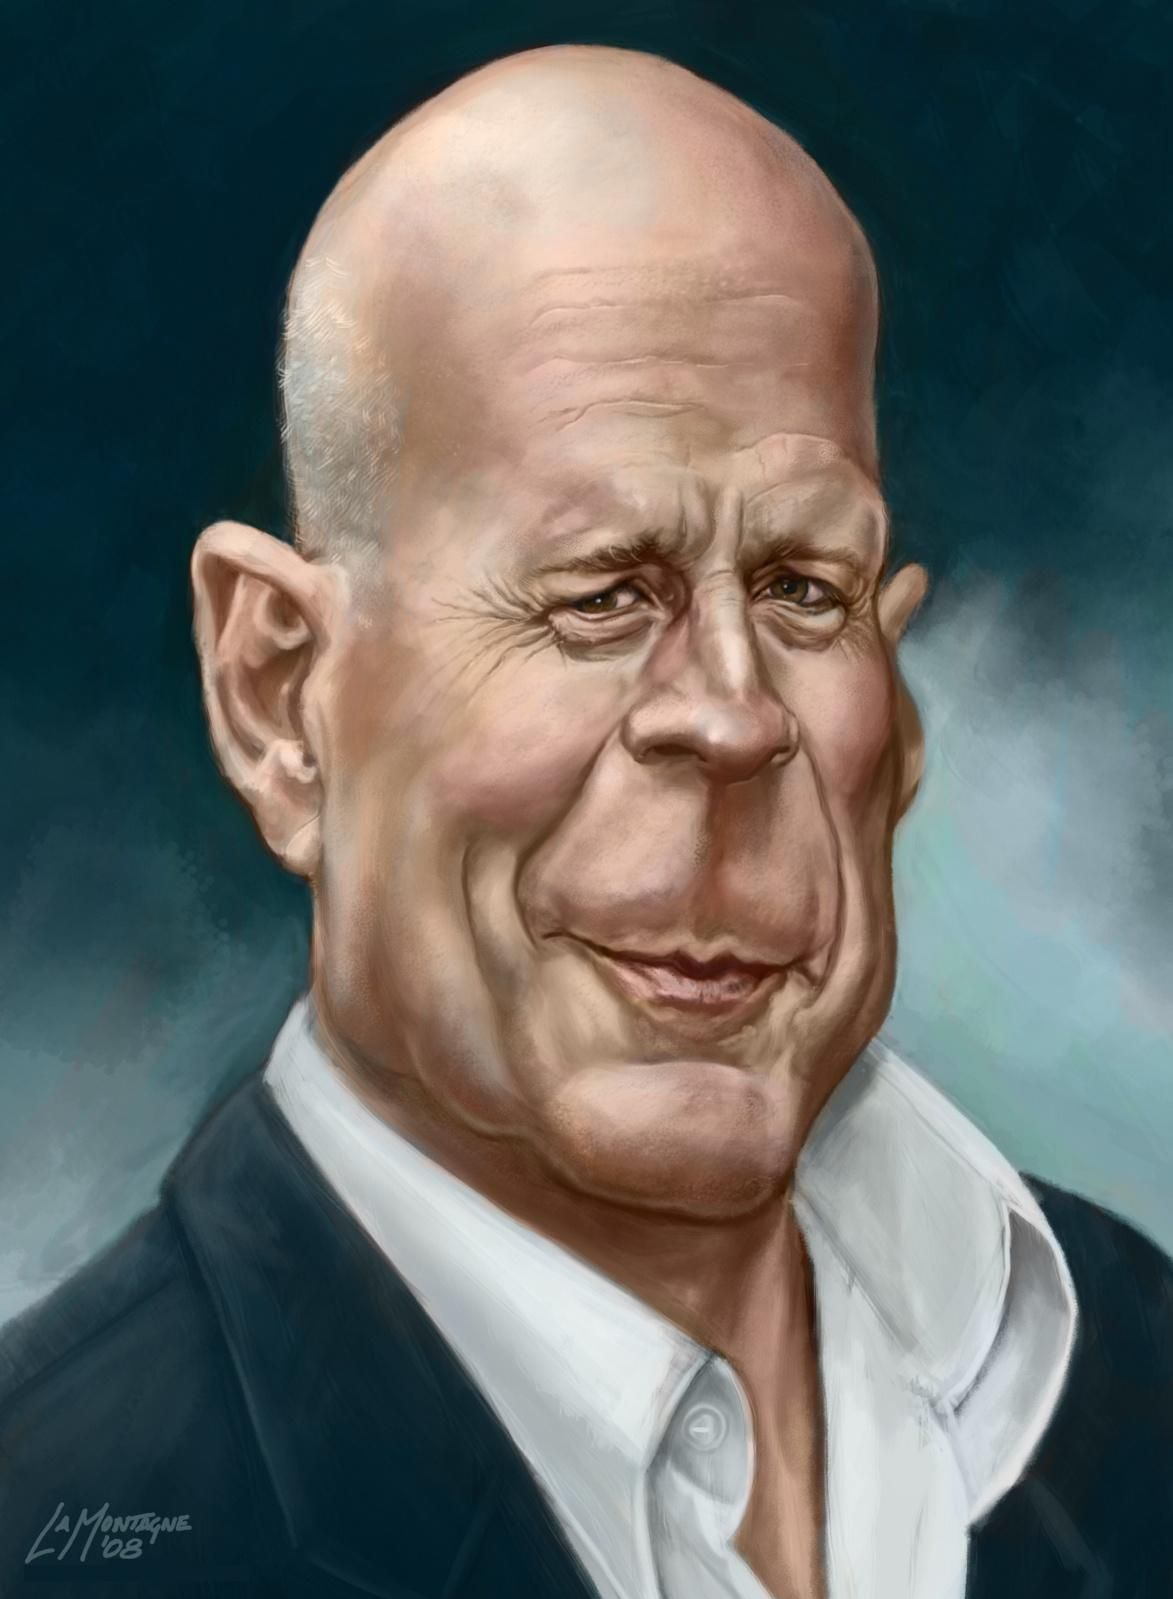 celebrity caricatures - Google Search | CHARACTERS | Pinterest ...